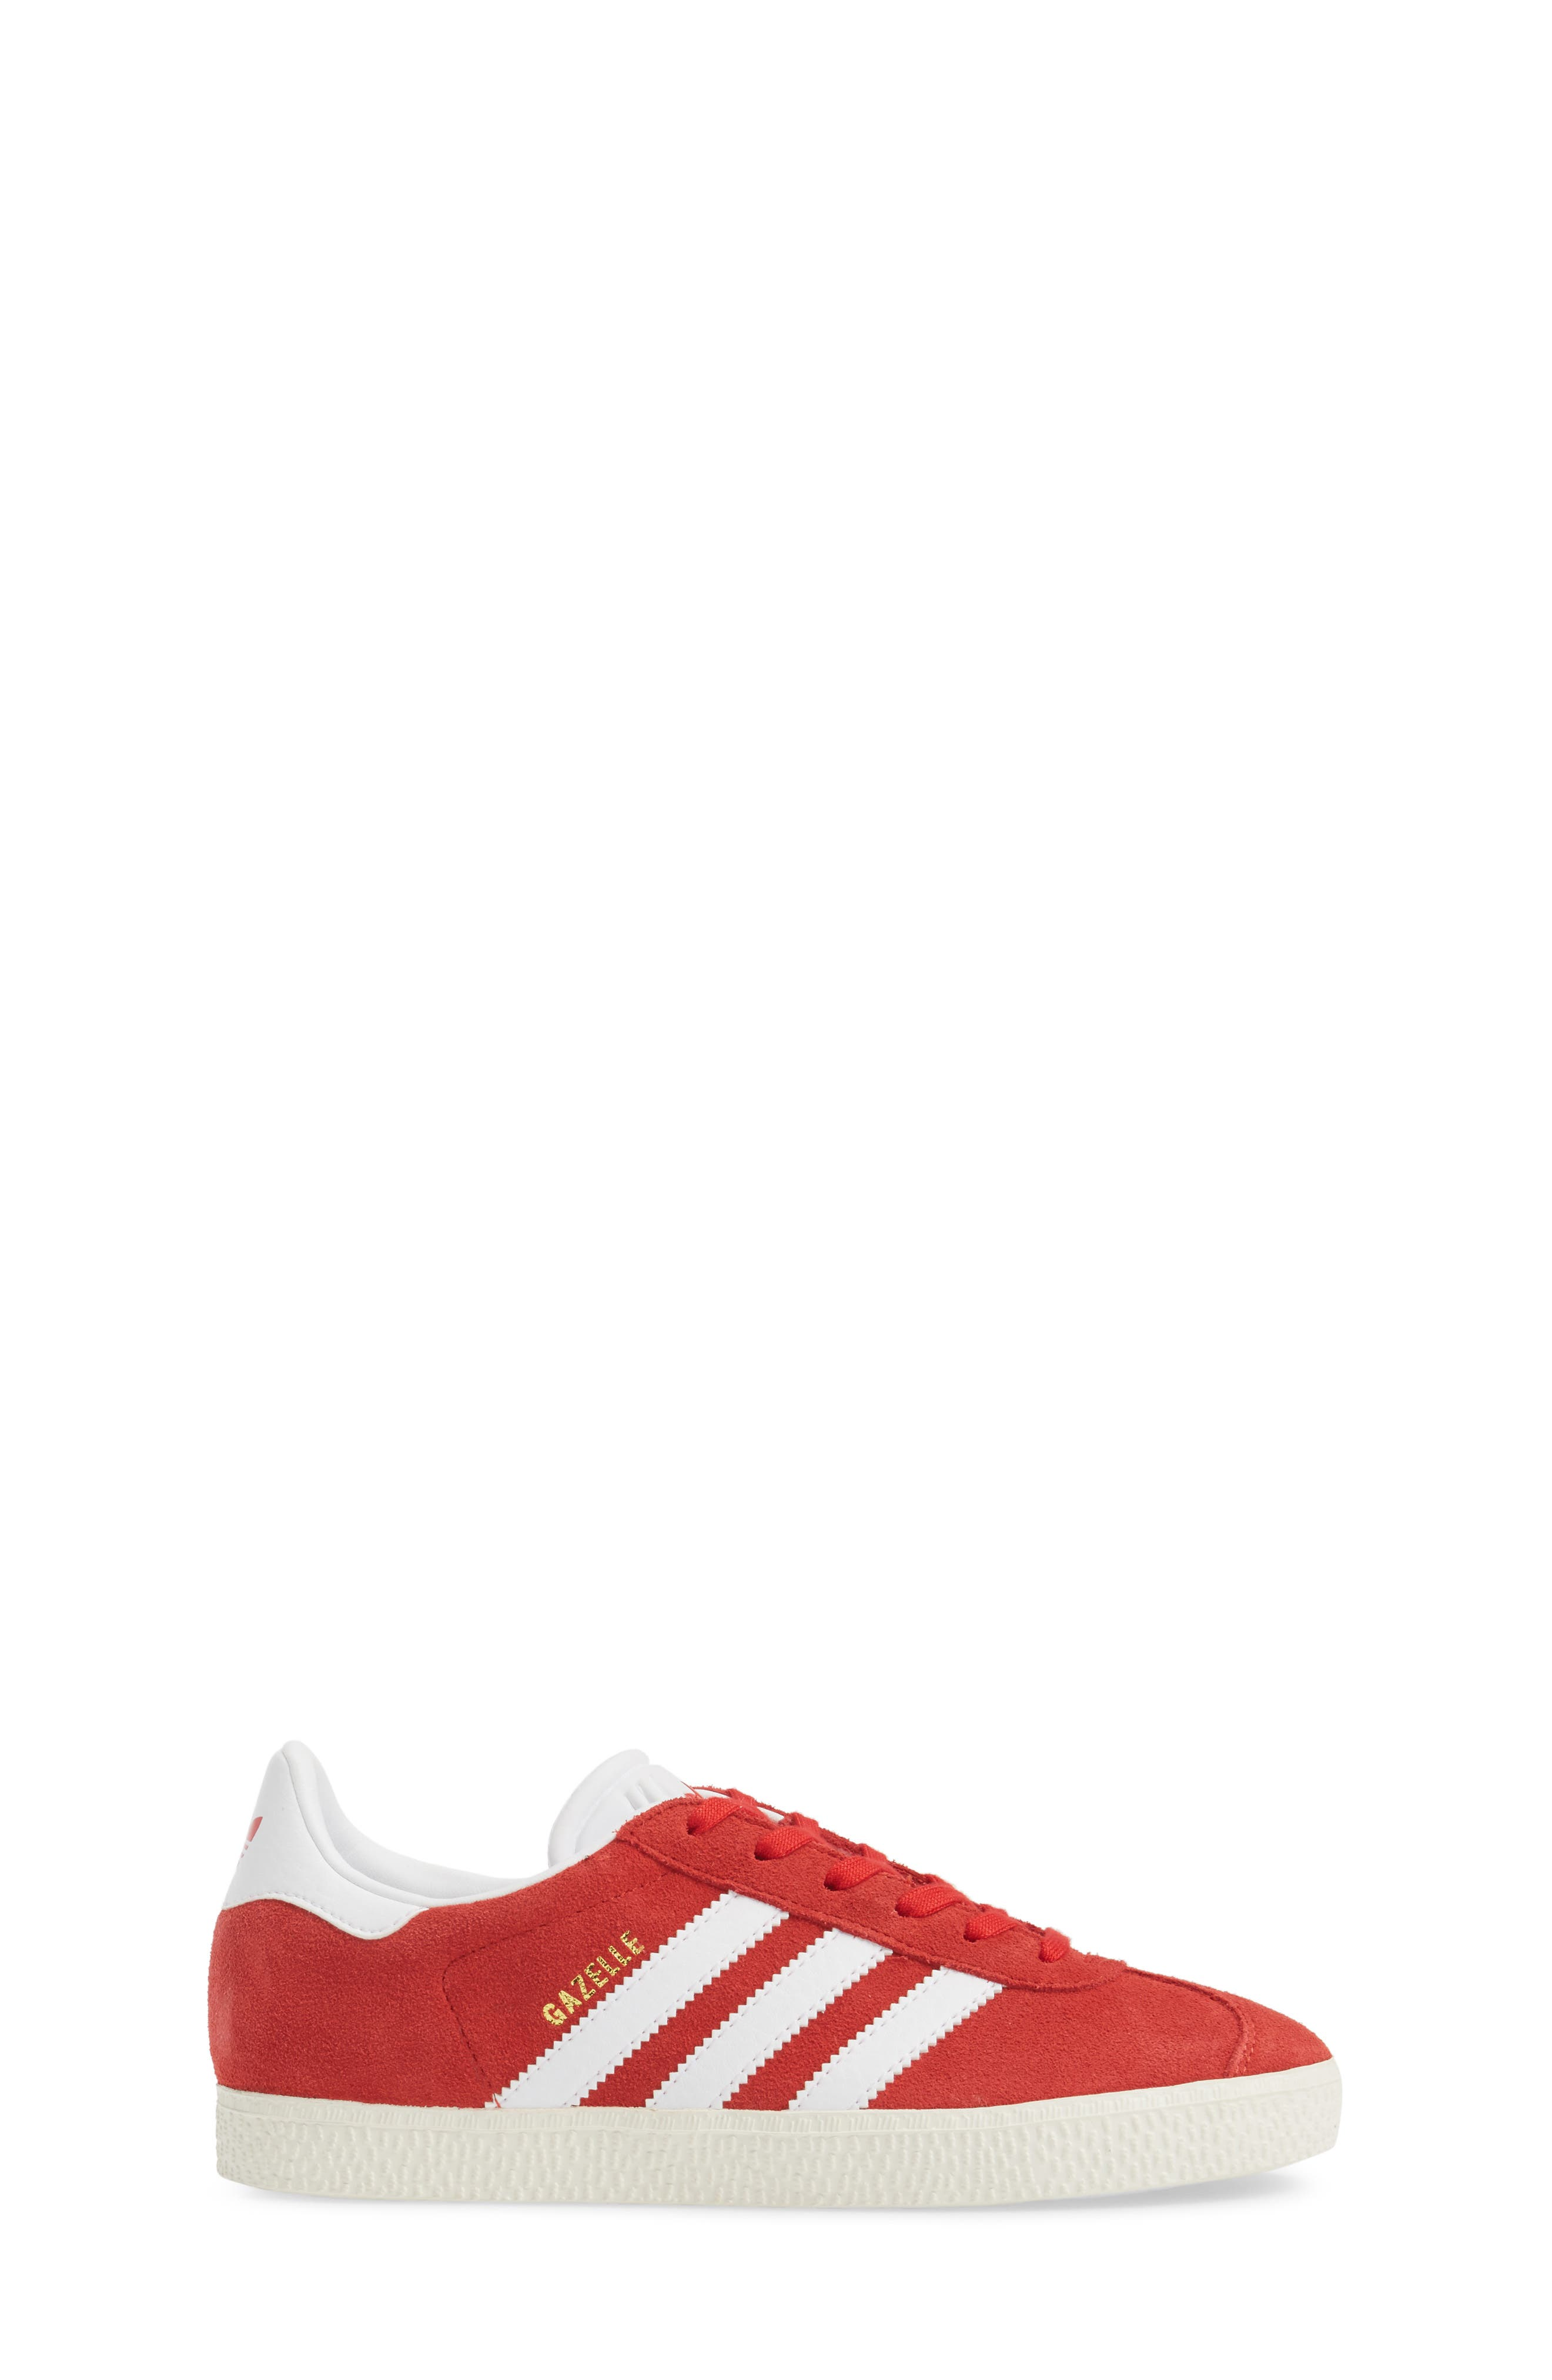 Alternate Image 3  - adidas Gazelle Sneaker (Toddler & Little Kid)